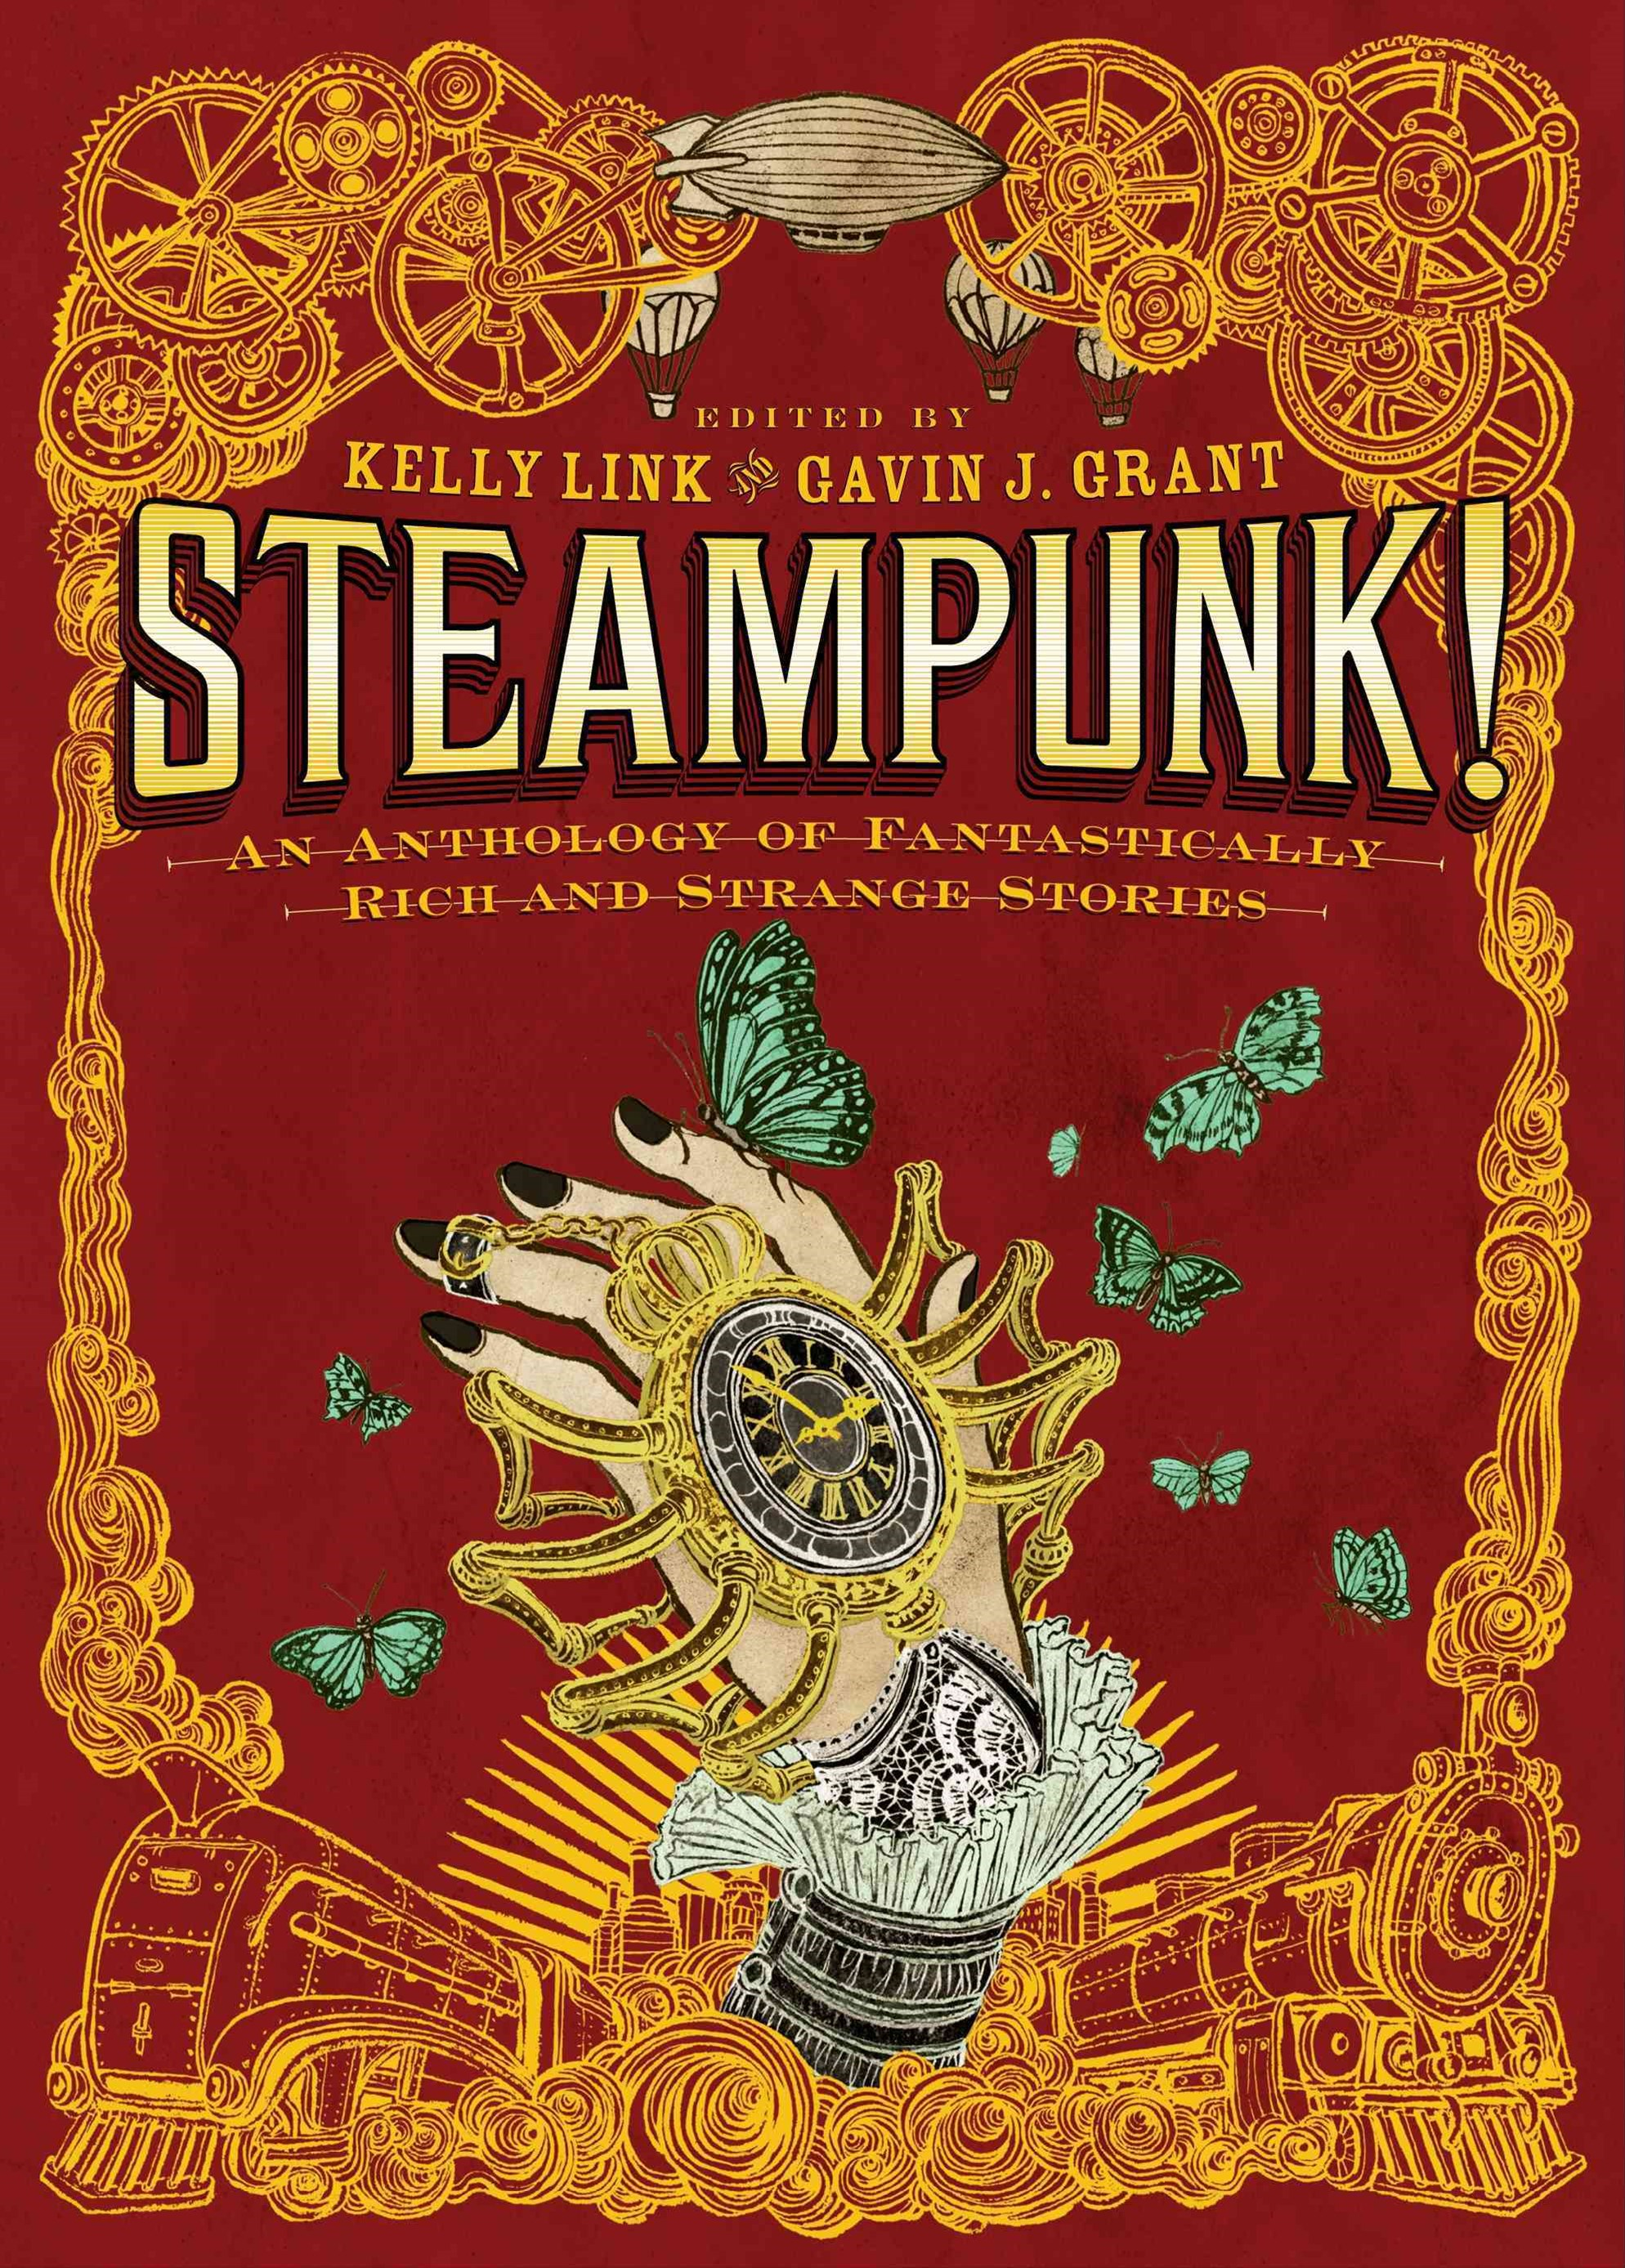 Steampunk! An Anthology Of Fantastically